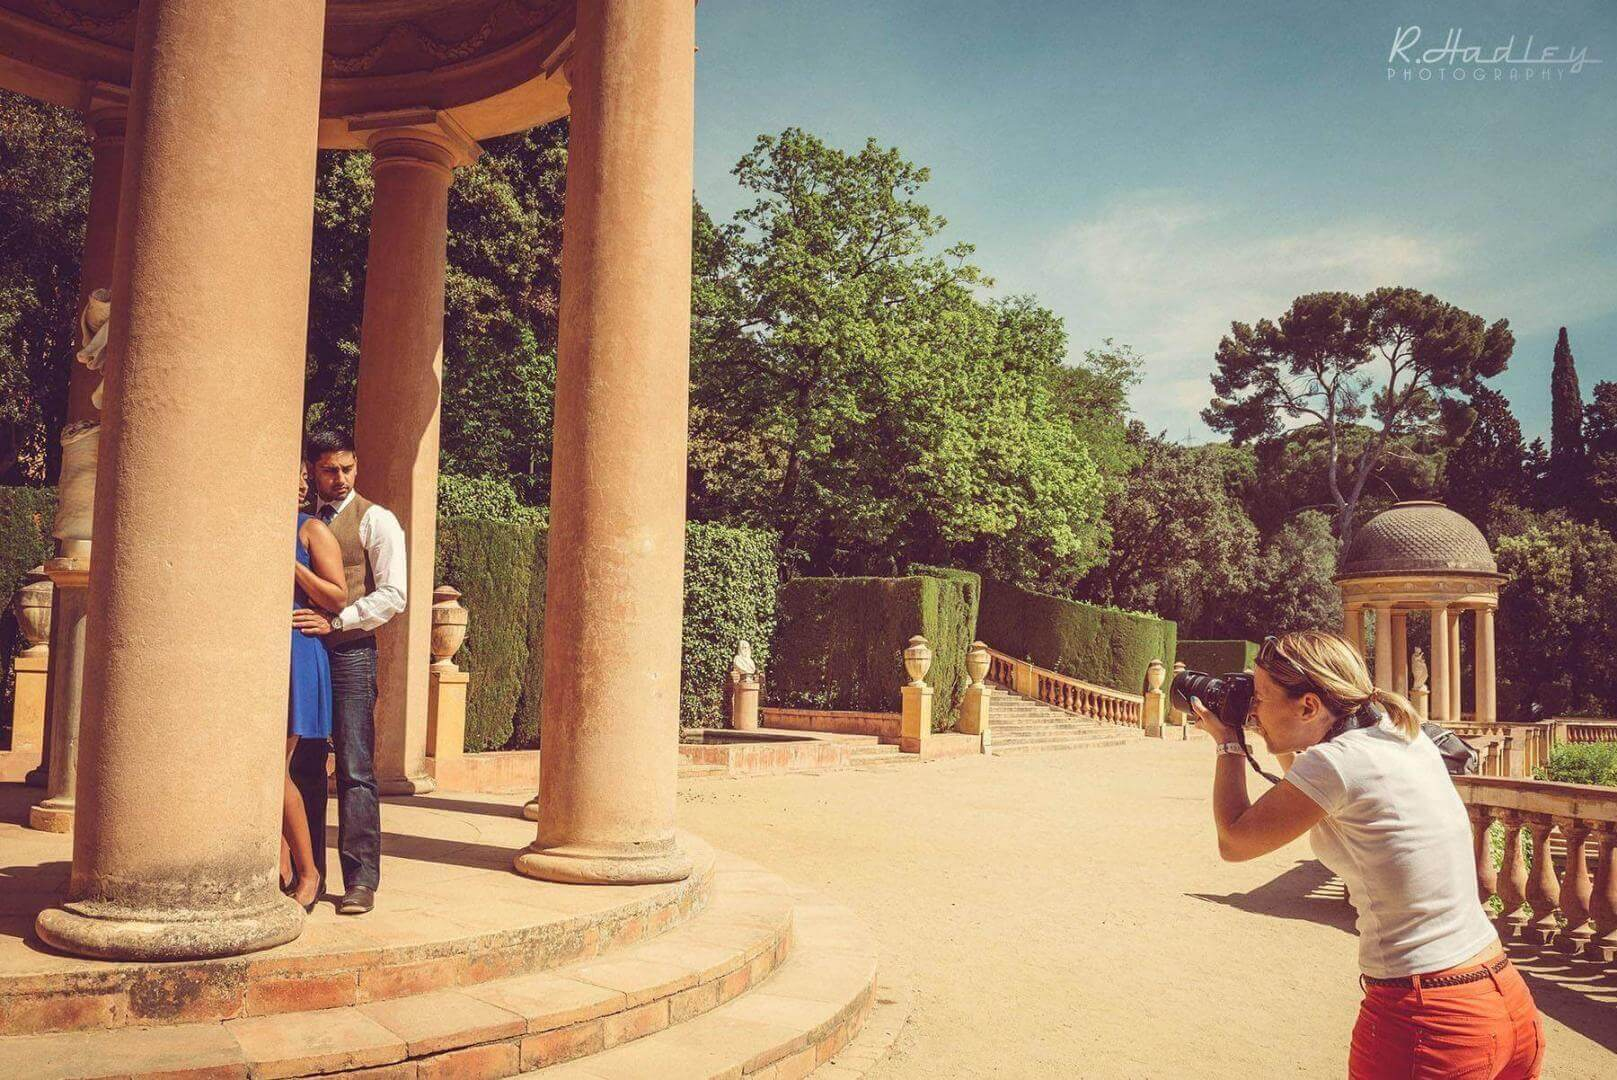 Engagement shoot in the Labyrinth Park